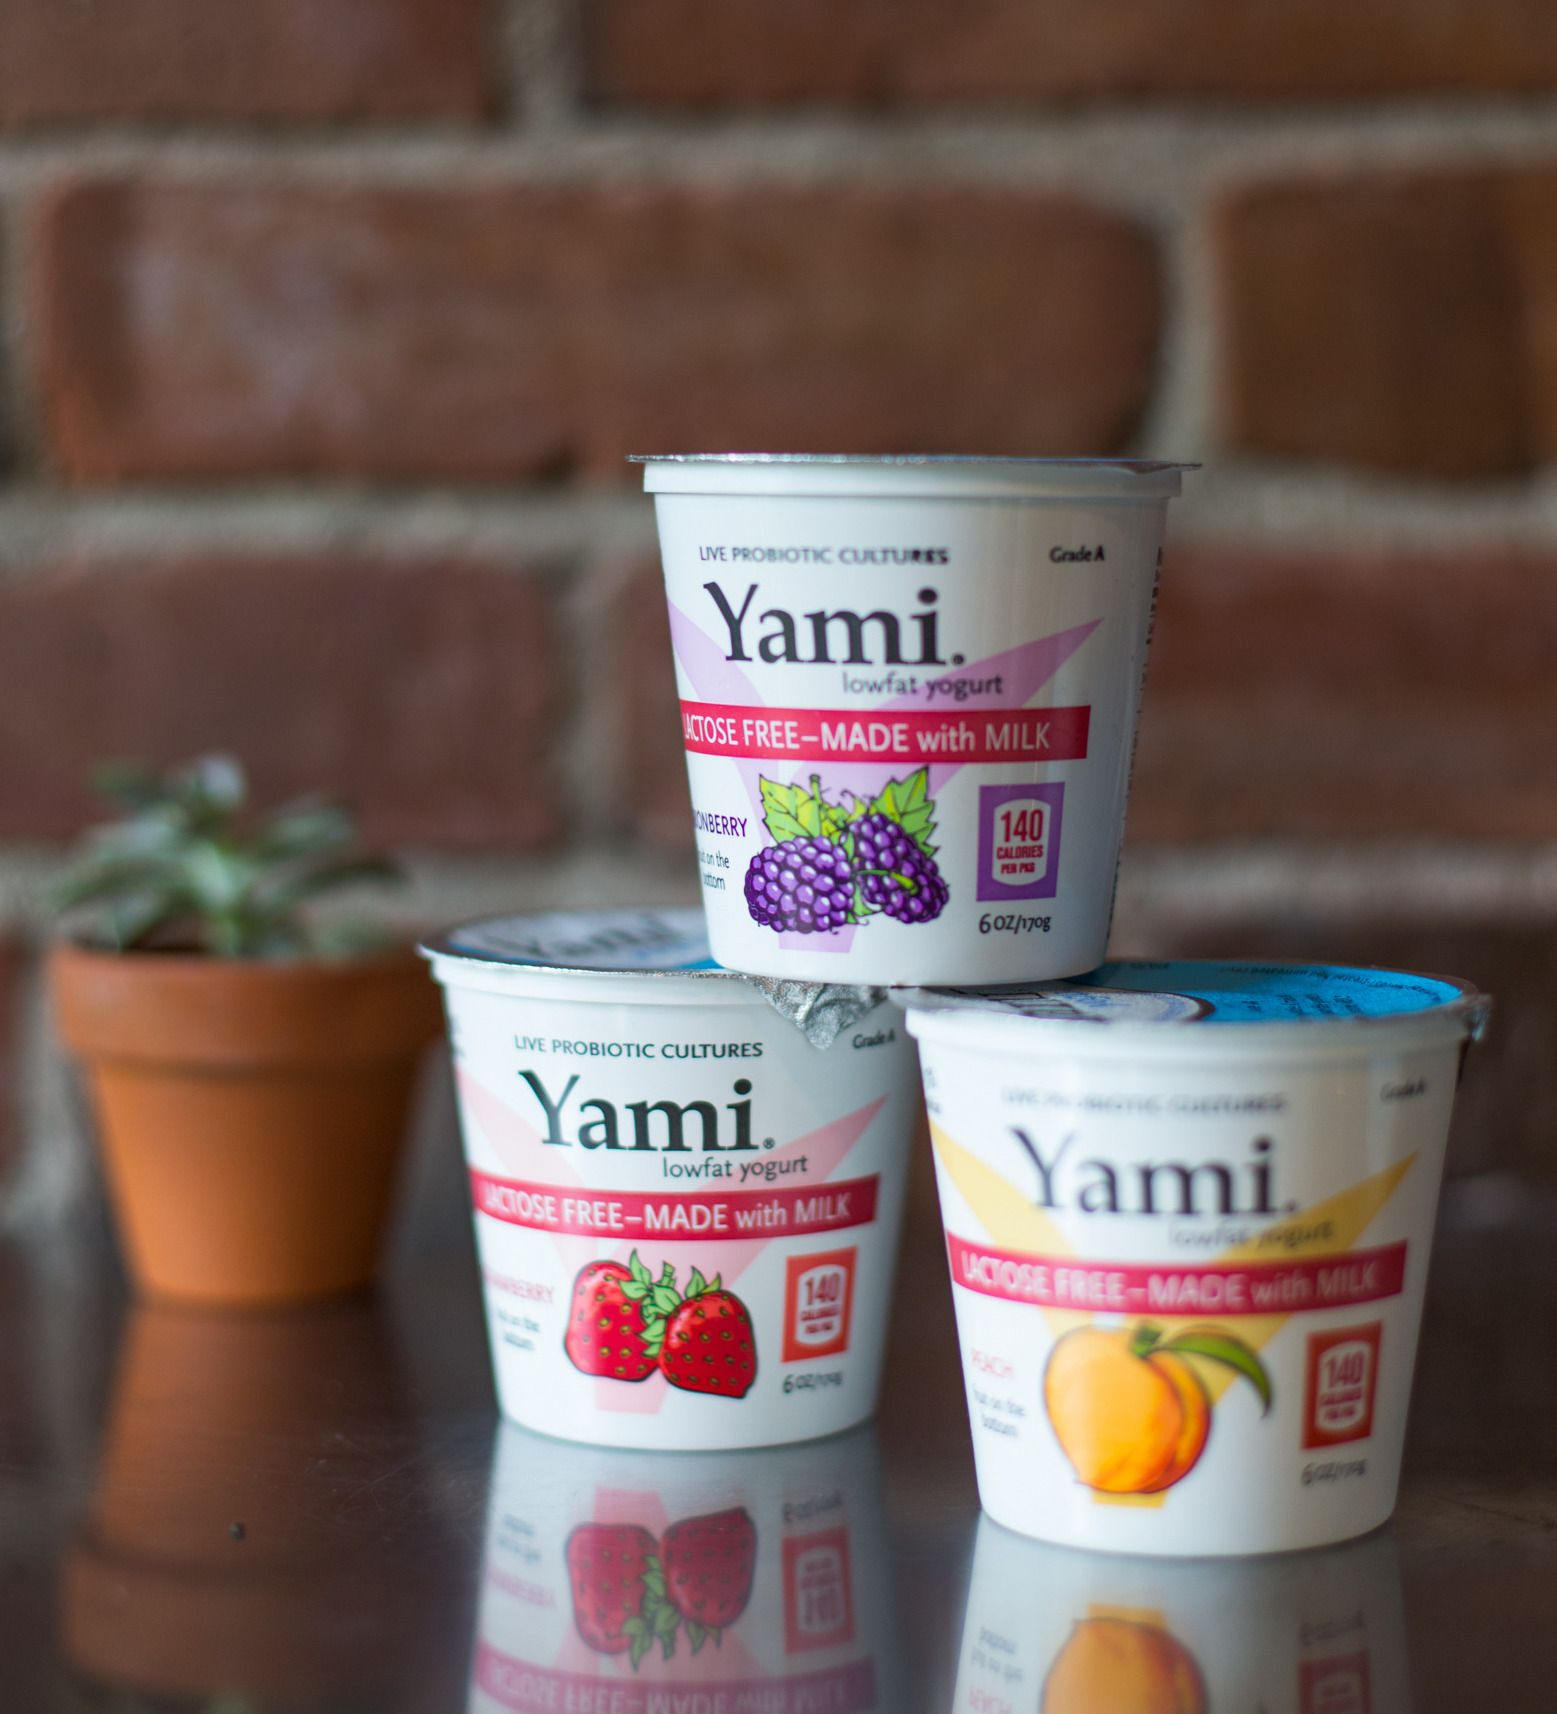 Yami offers flavors to please all types of palates and has plenty of